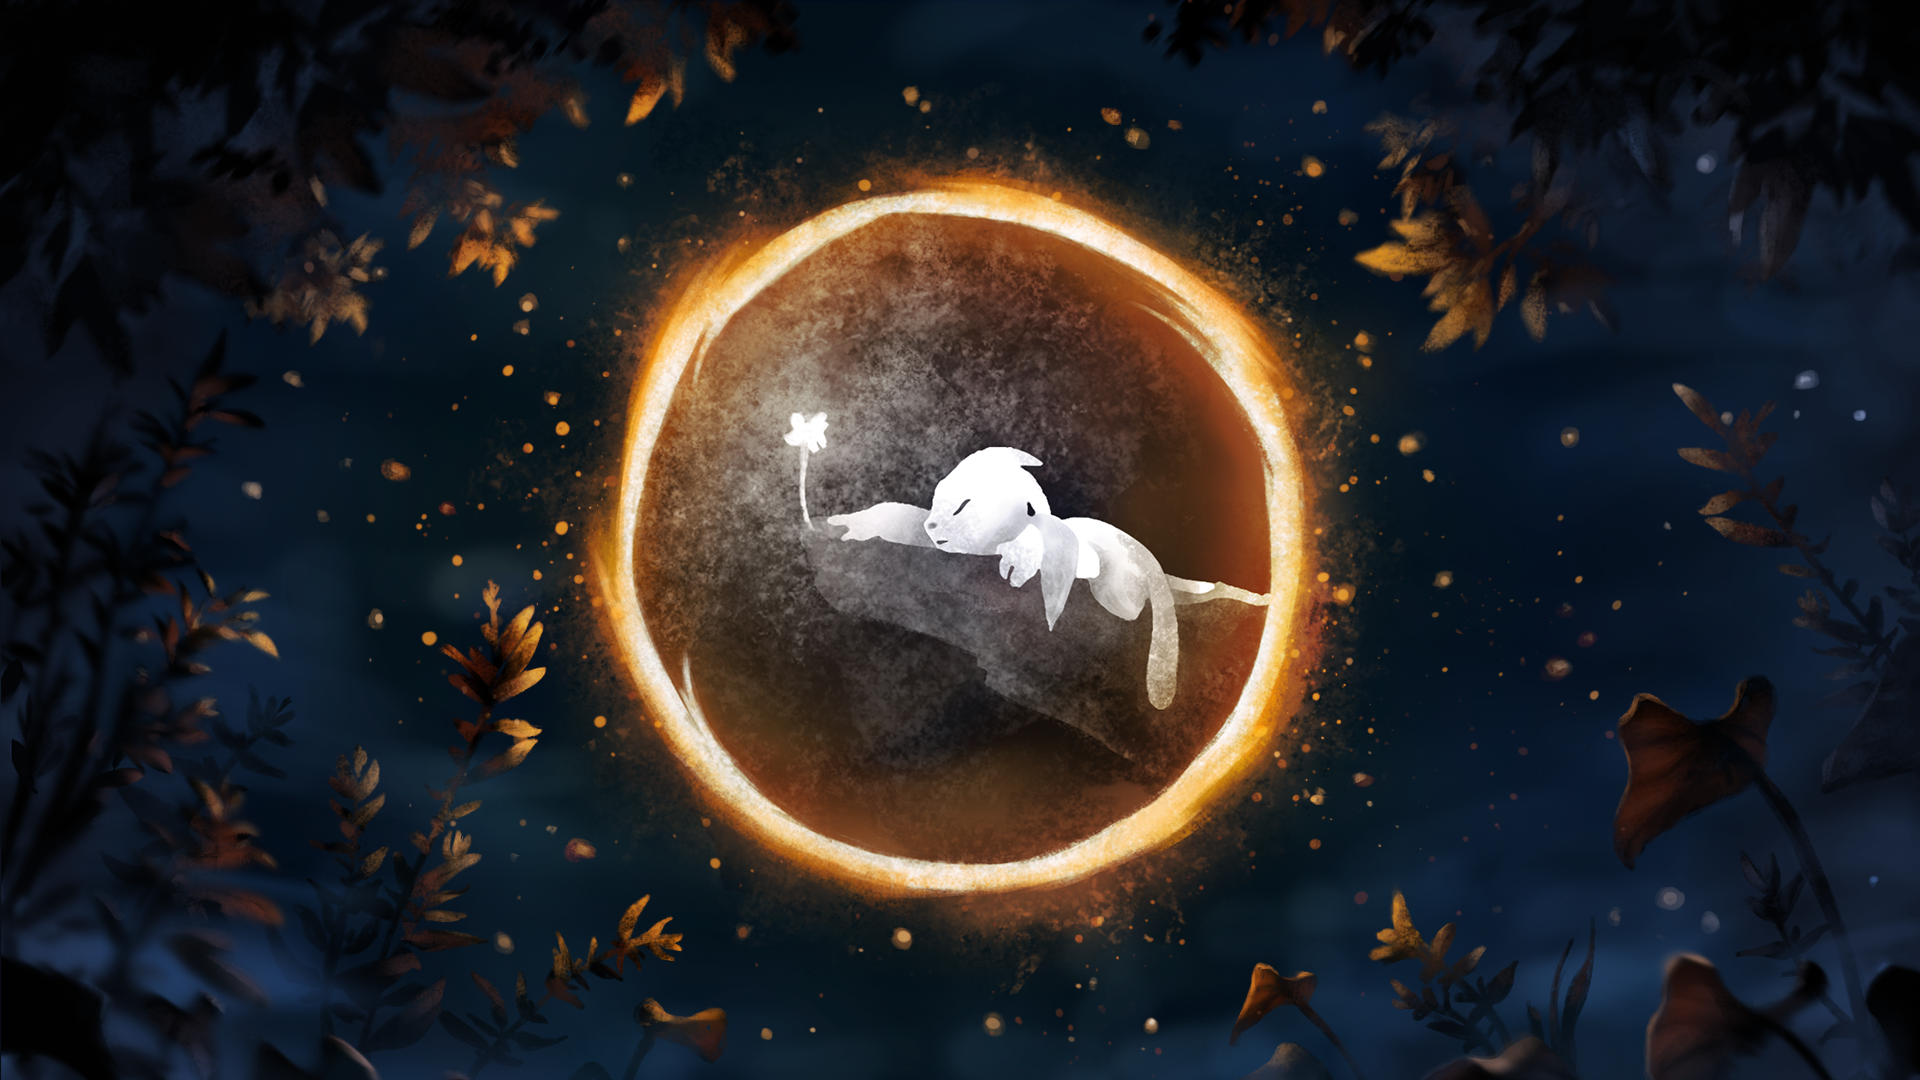 The Journey Begins achievement for Ori and the Blind Forest on Nintendo Switch